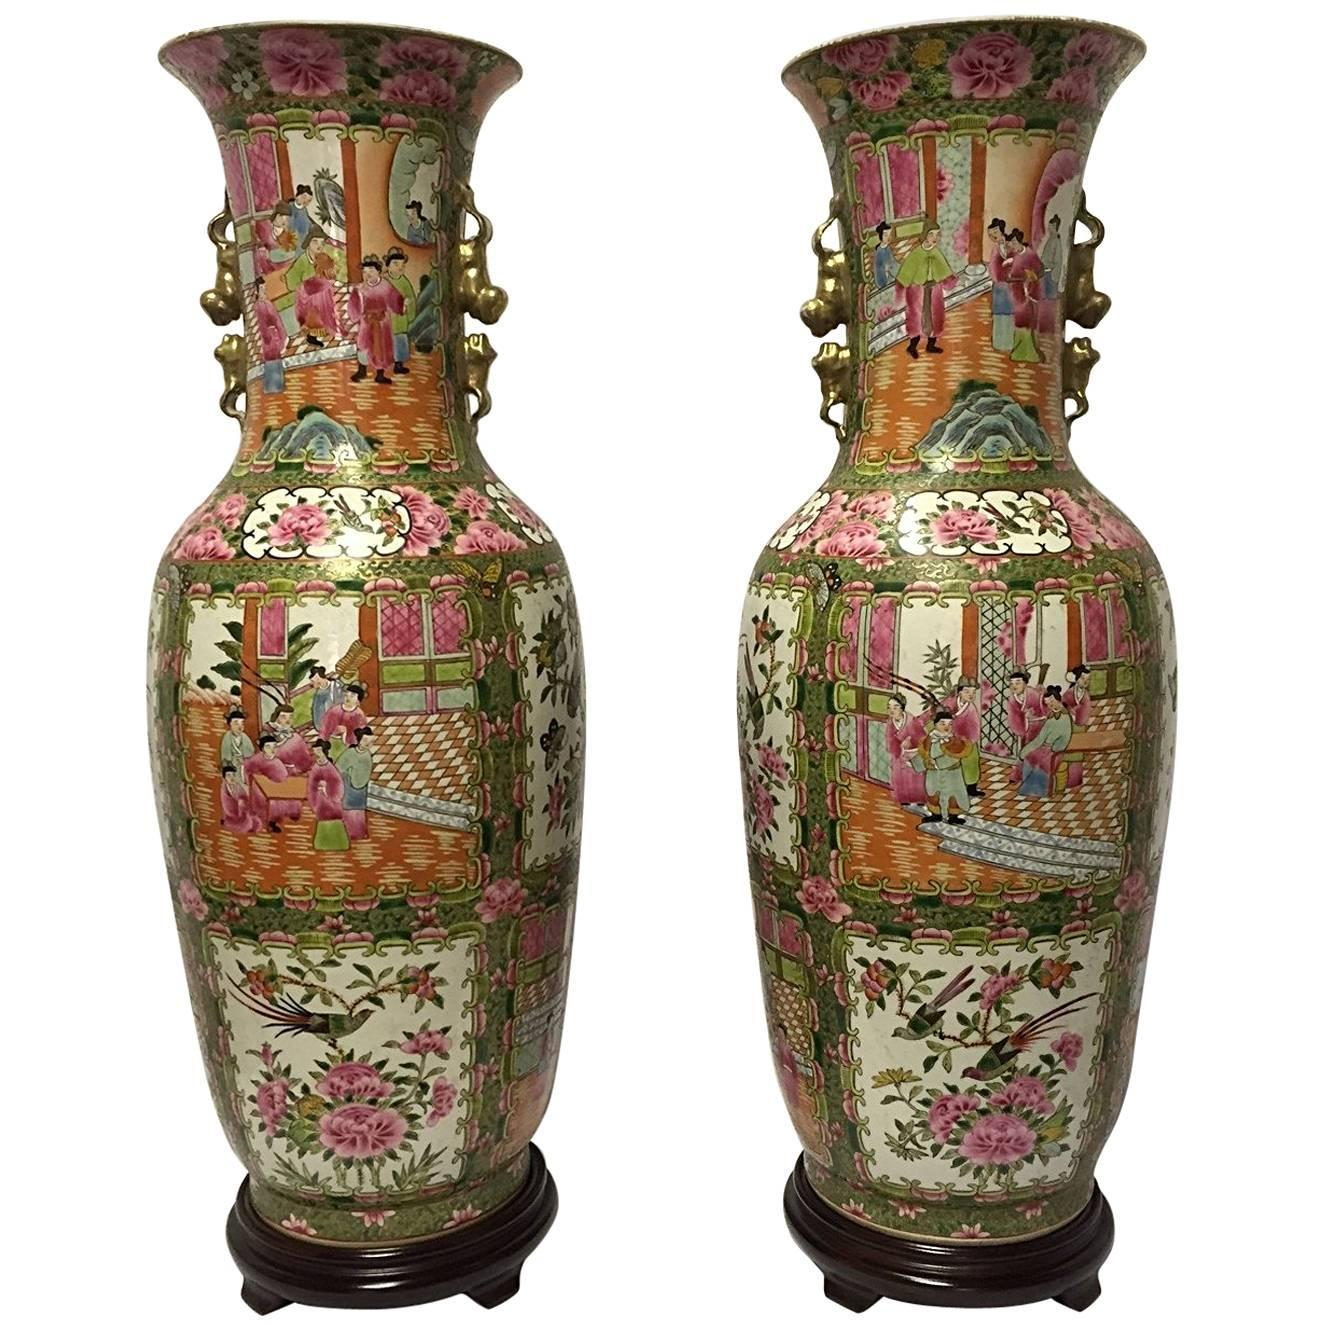 Antique chinese porcelain canton rose medallion vases for sale at pair of chinese rose canton porcelain vases circa 1900 floridaeventfo Choice Image